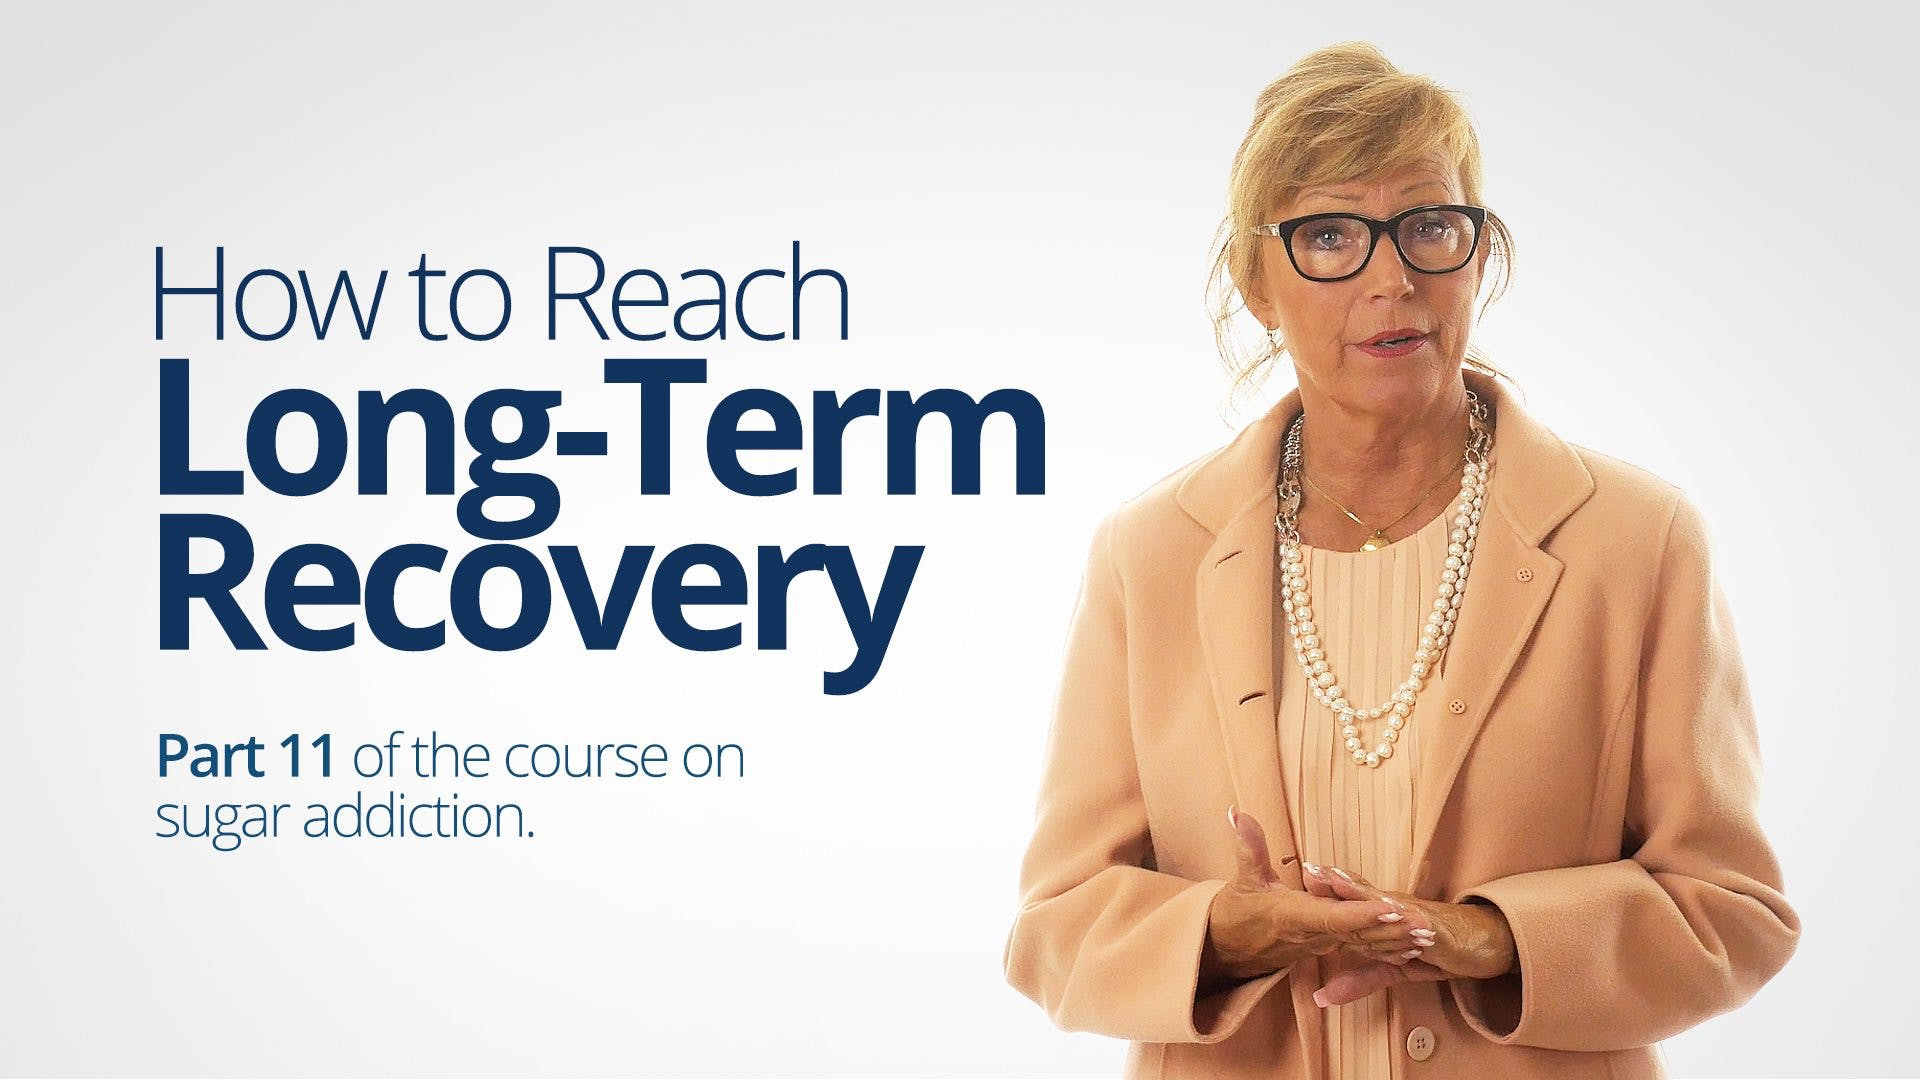 How to Reach Long-Term Recovery